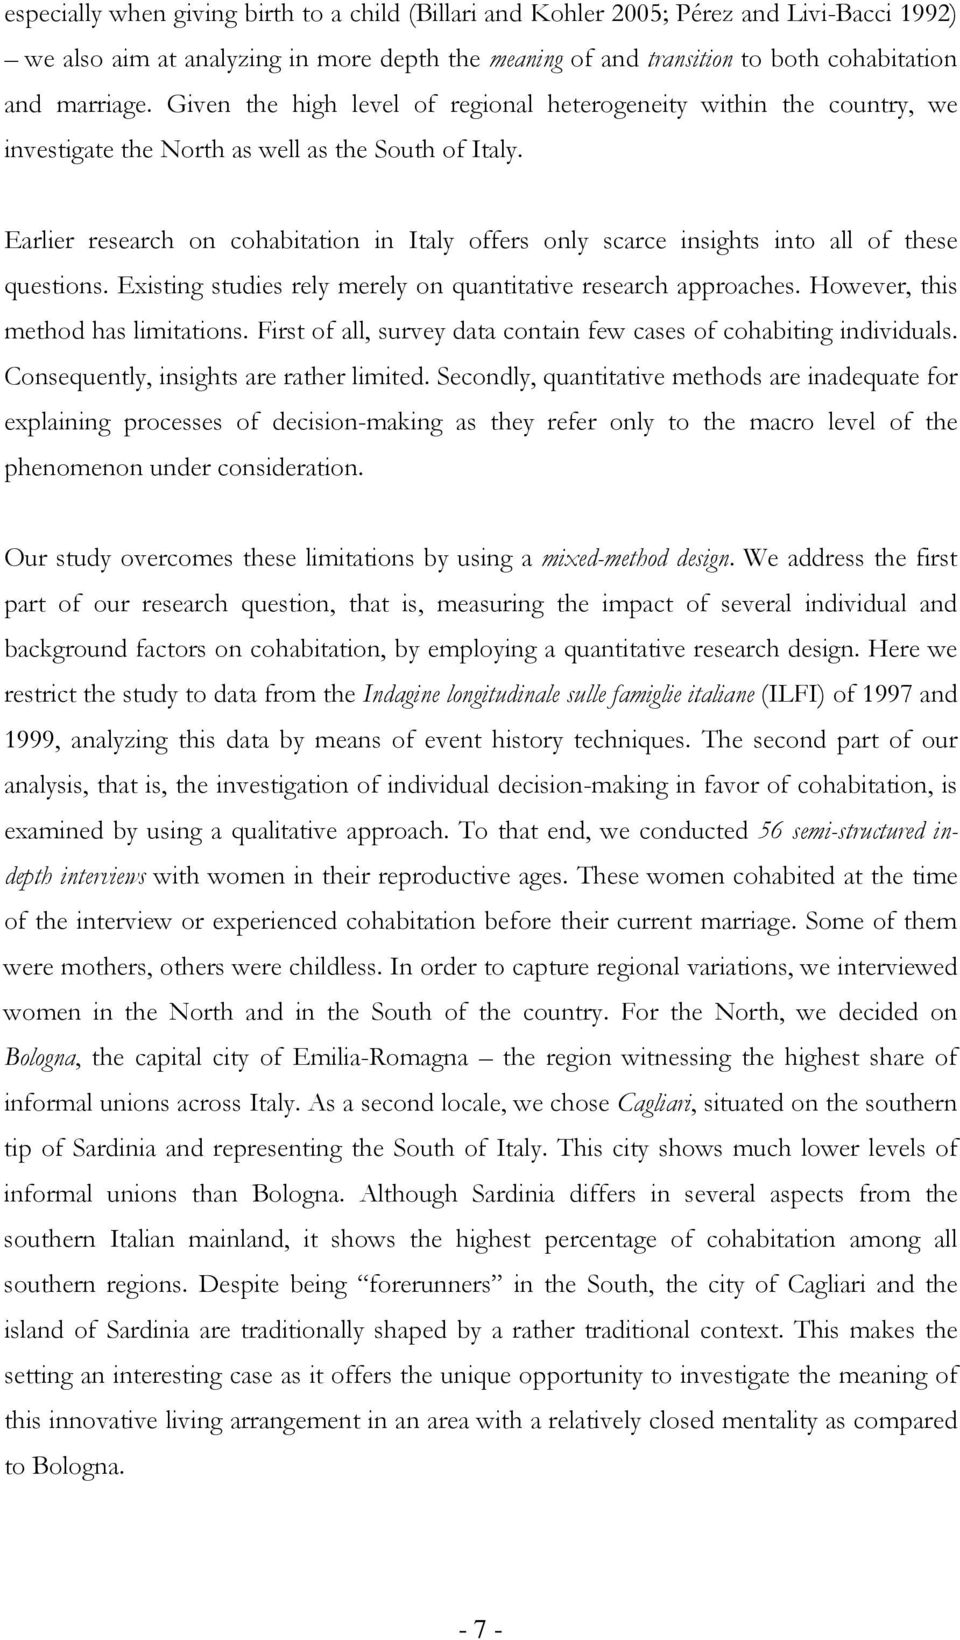 Earlier research on cohabitation in Italy offers only scarce insights into all of these questions. Existing studies rely merely on quantitative research approaches.